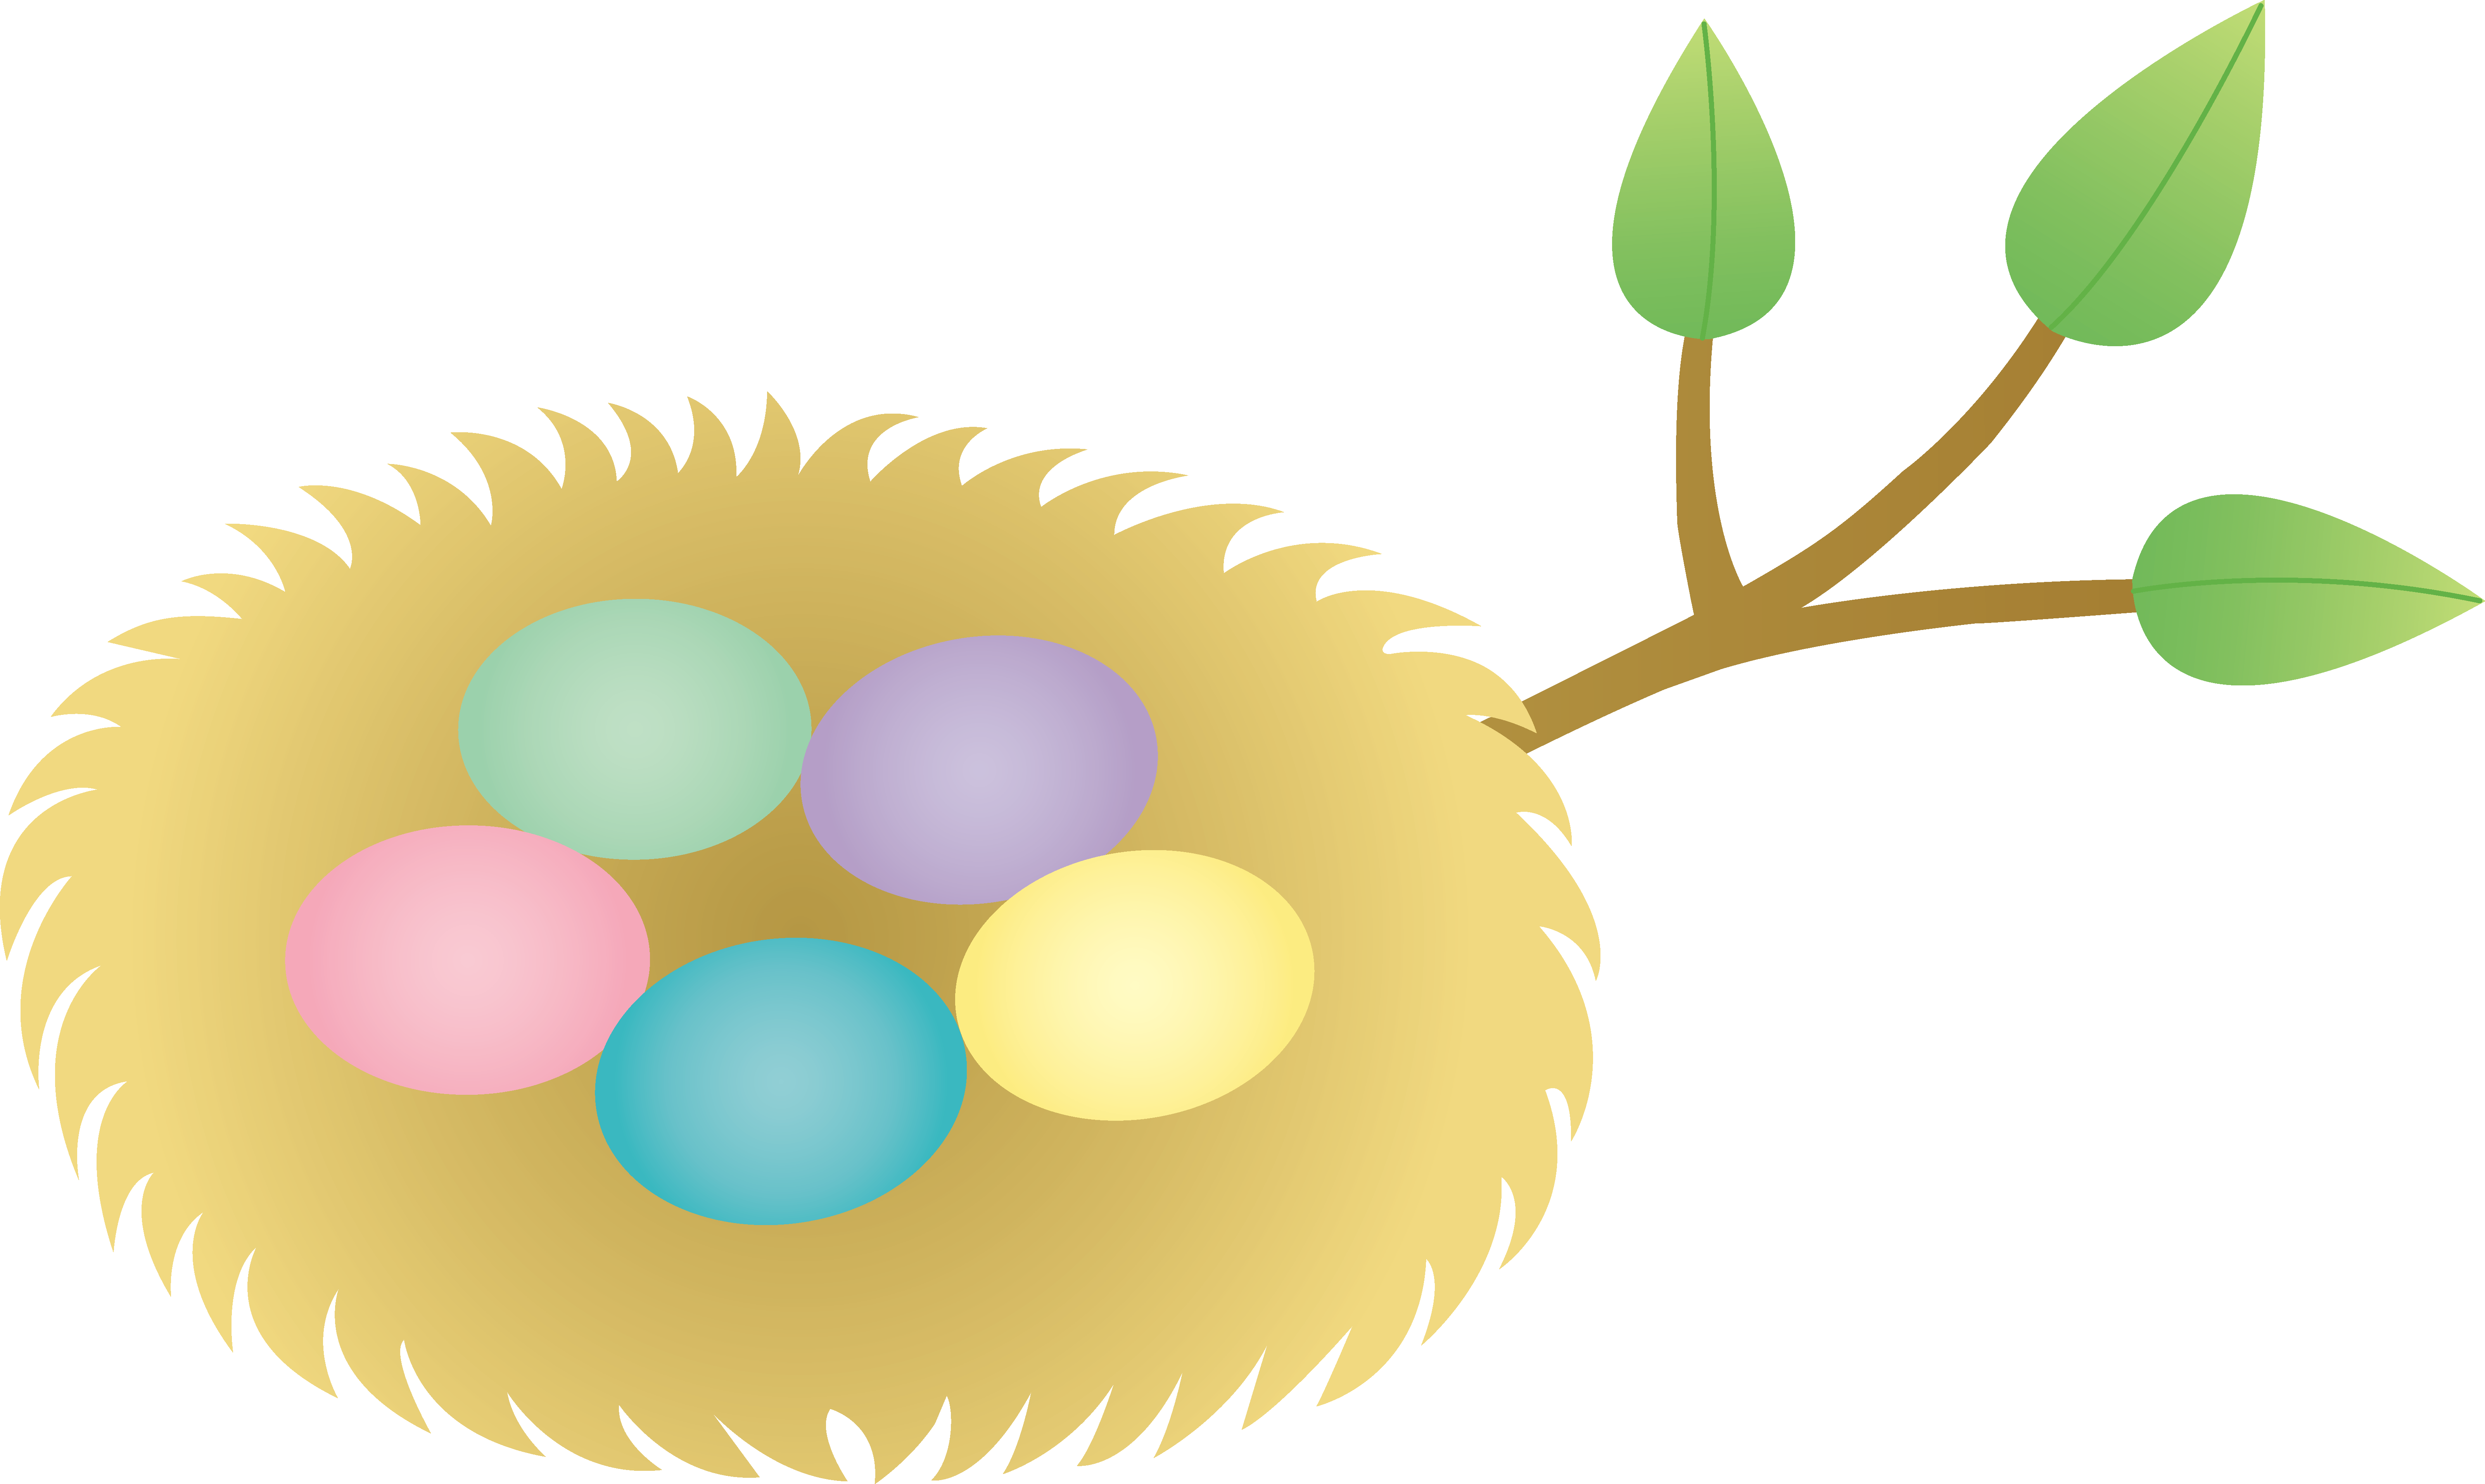 Nest clipart animated #8397 Free Eggs Clipartwork Download